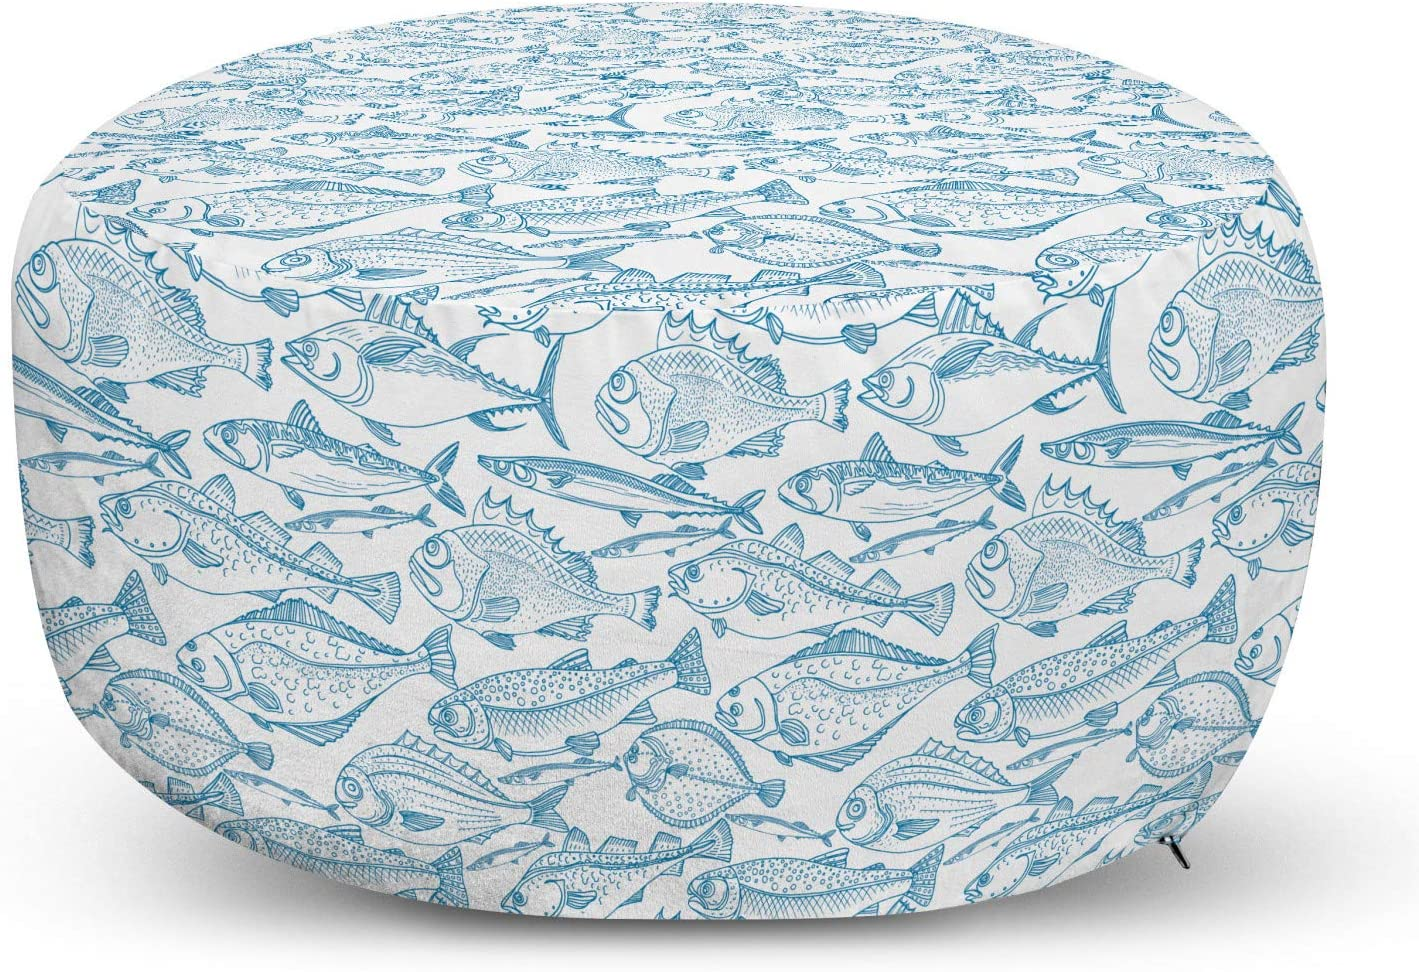 Lunarable Fish Pouf Cover Popular standard with Zipper Now on sale of Sketch Macke Cod Perch